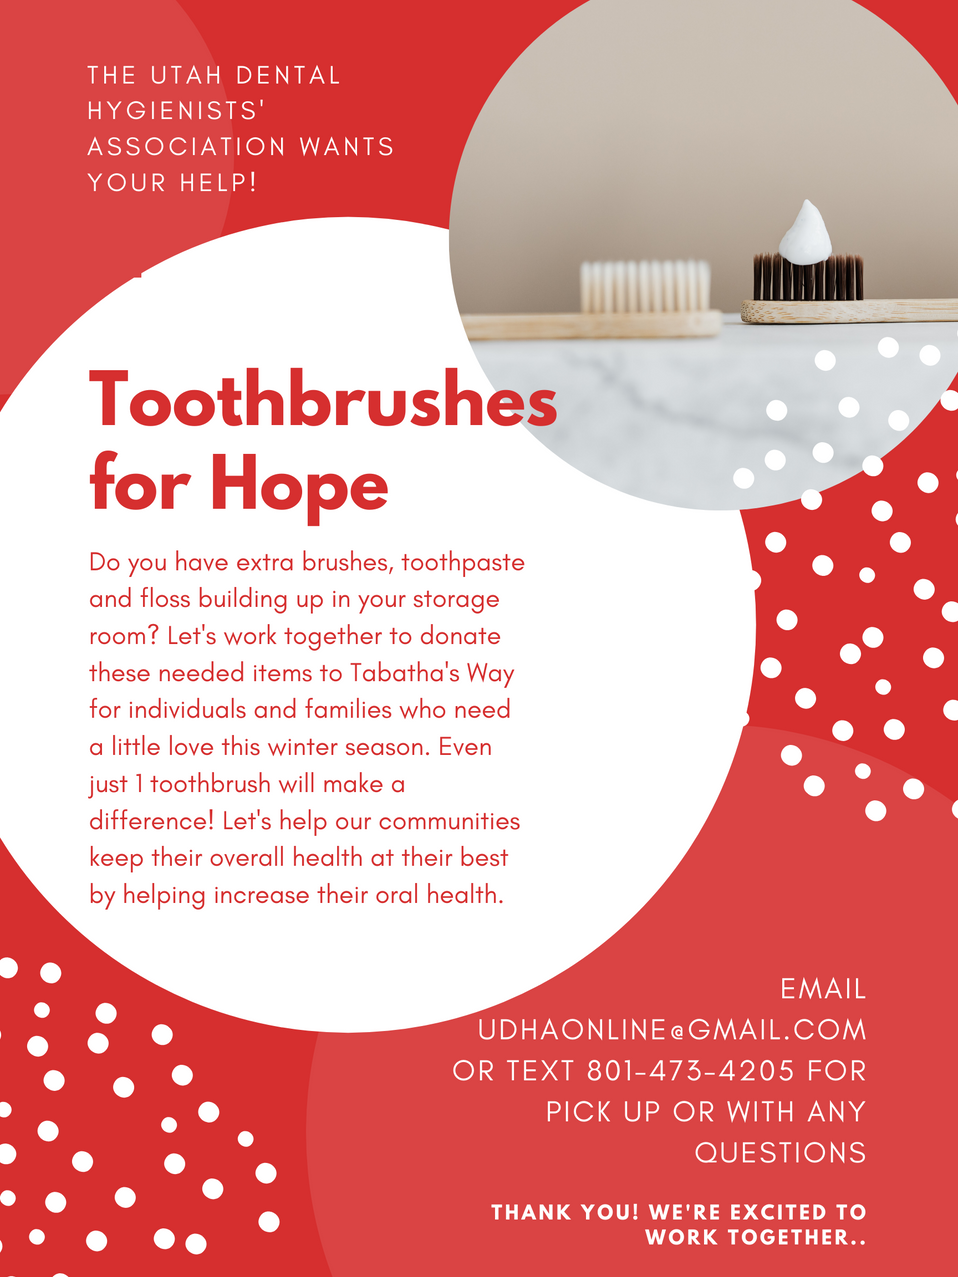 Toothbrushes for Hope from the UDHA